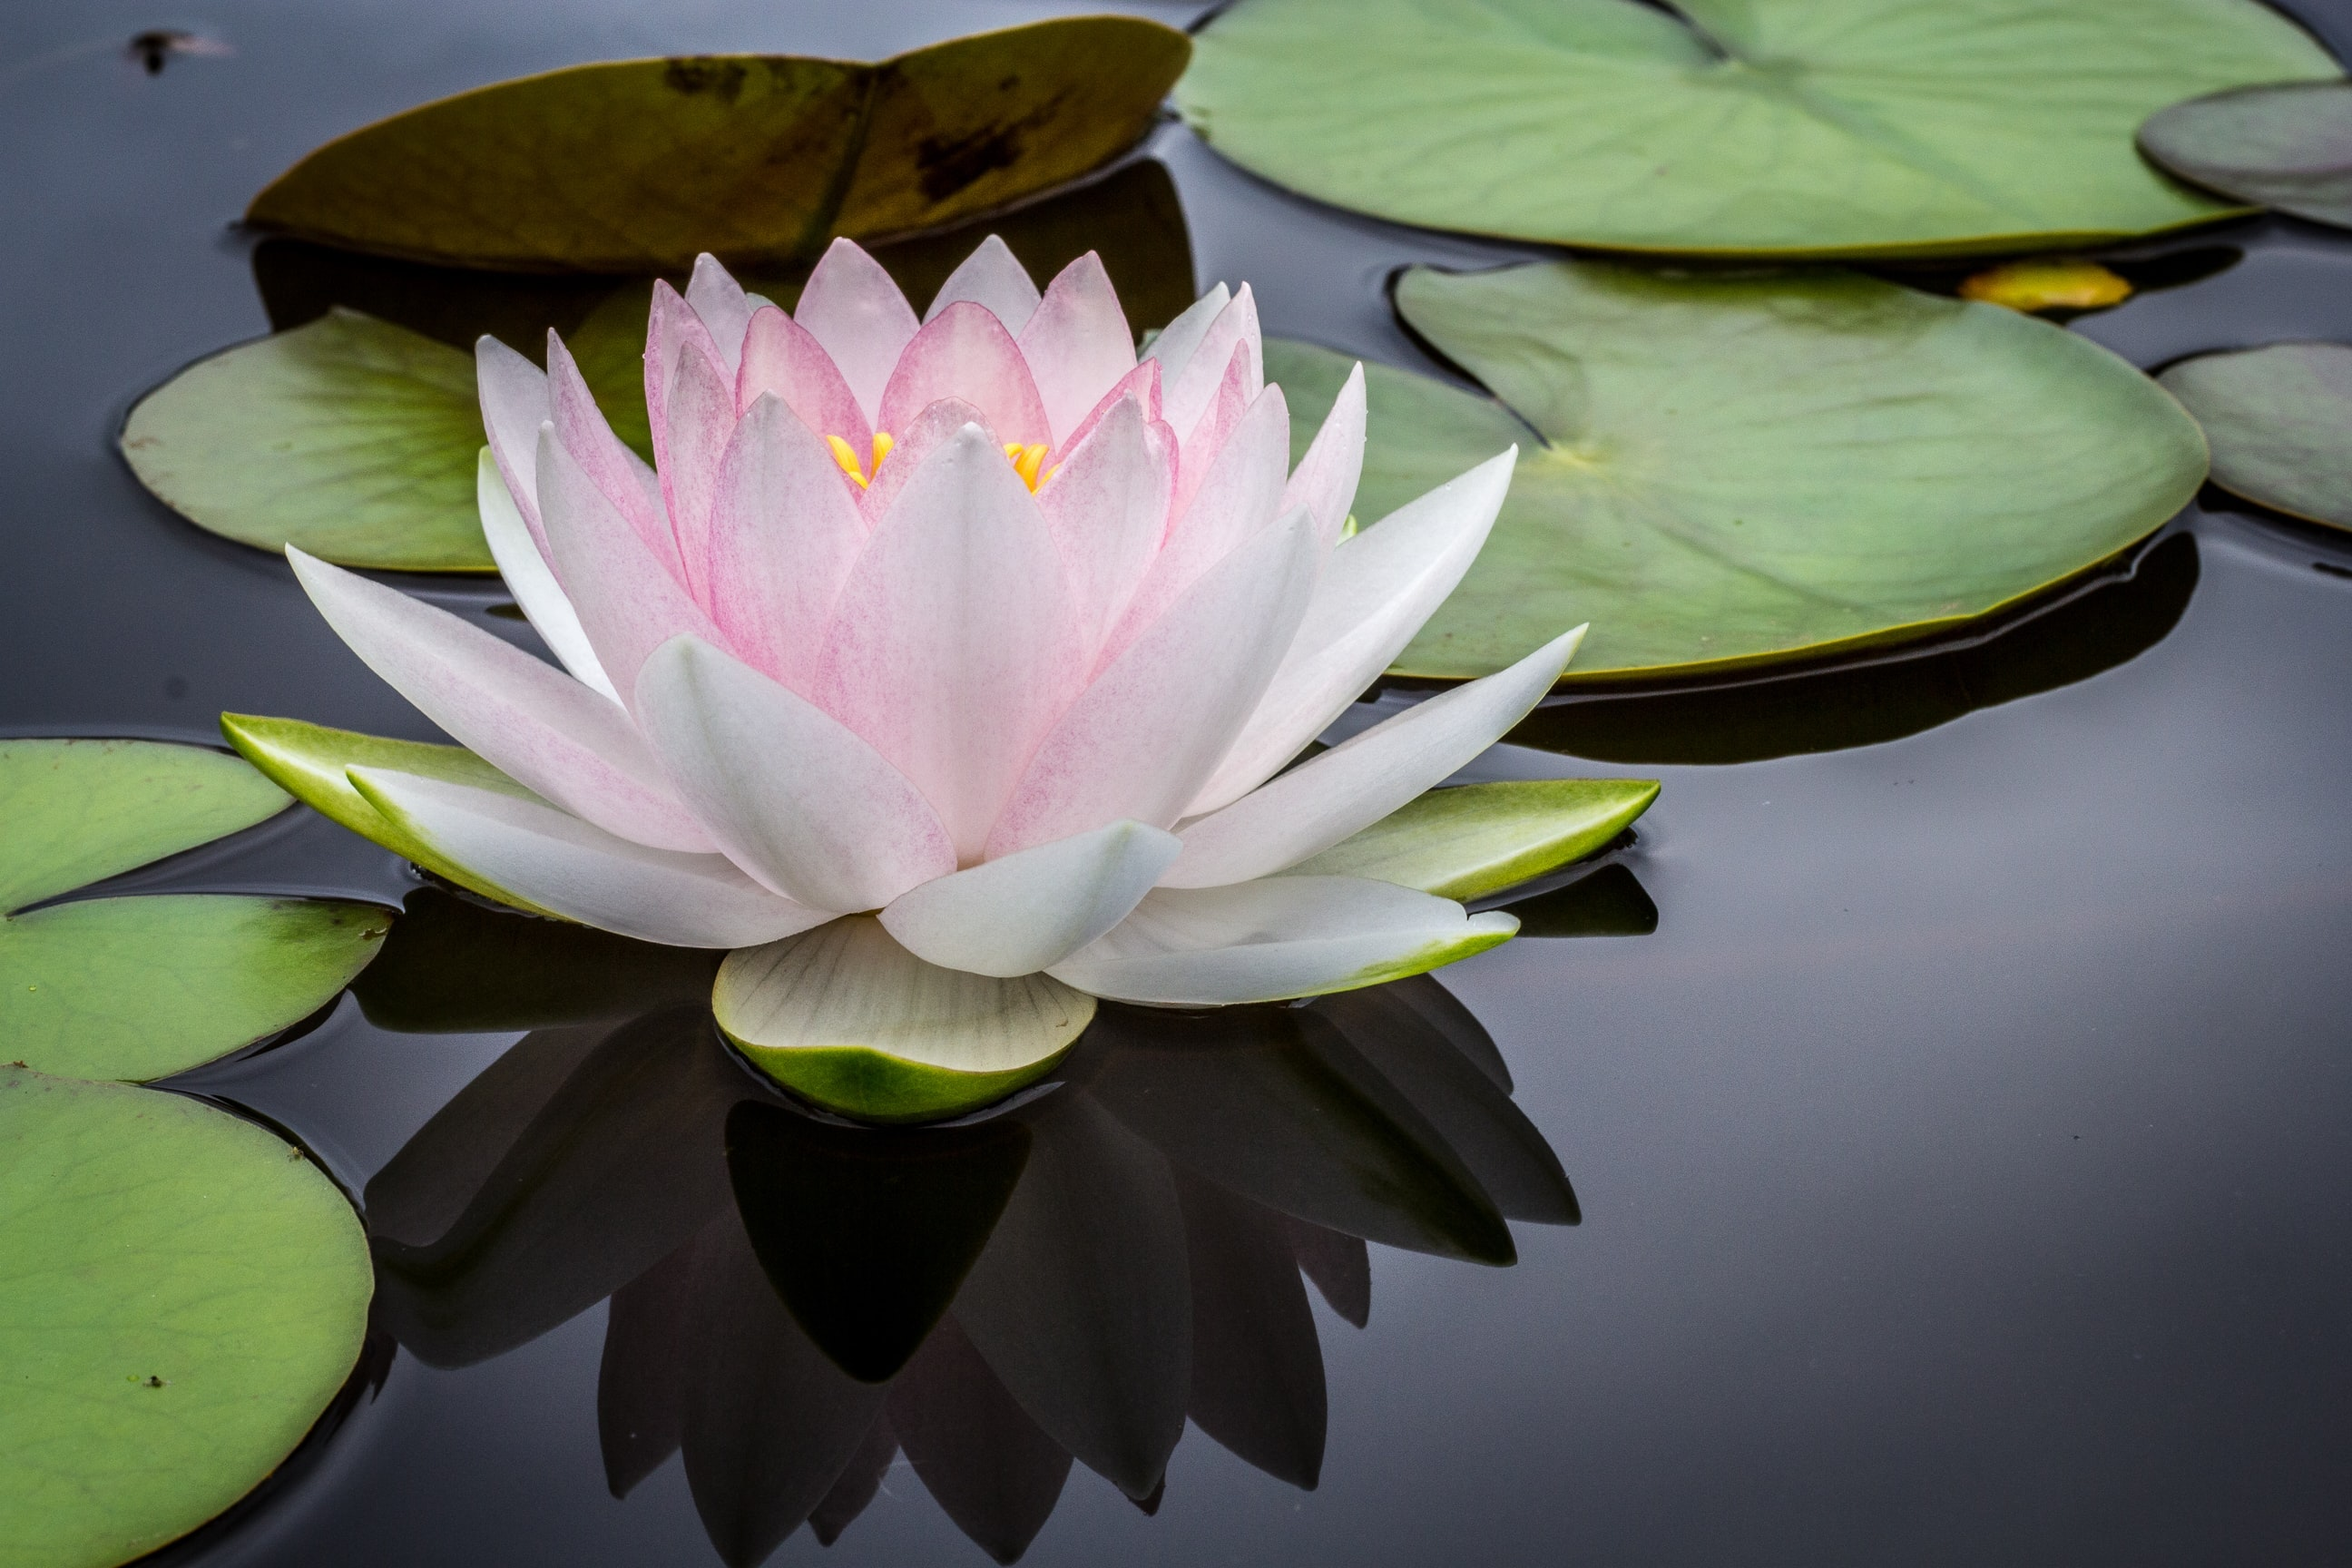 Mindful Self-Compassion: Transform Self-Worth and Build Resilience